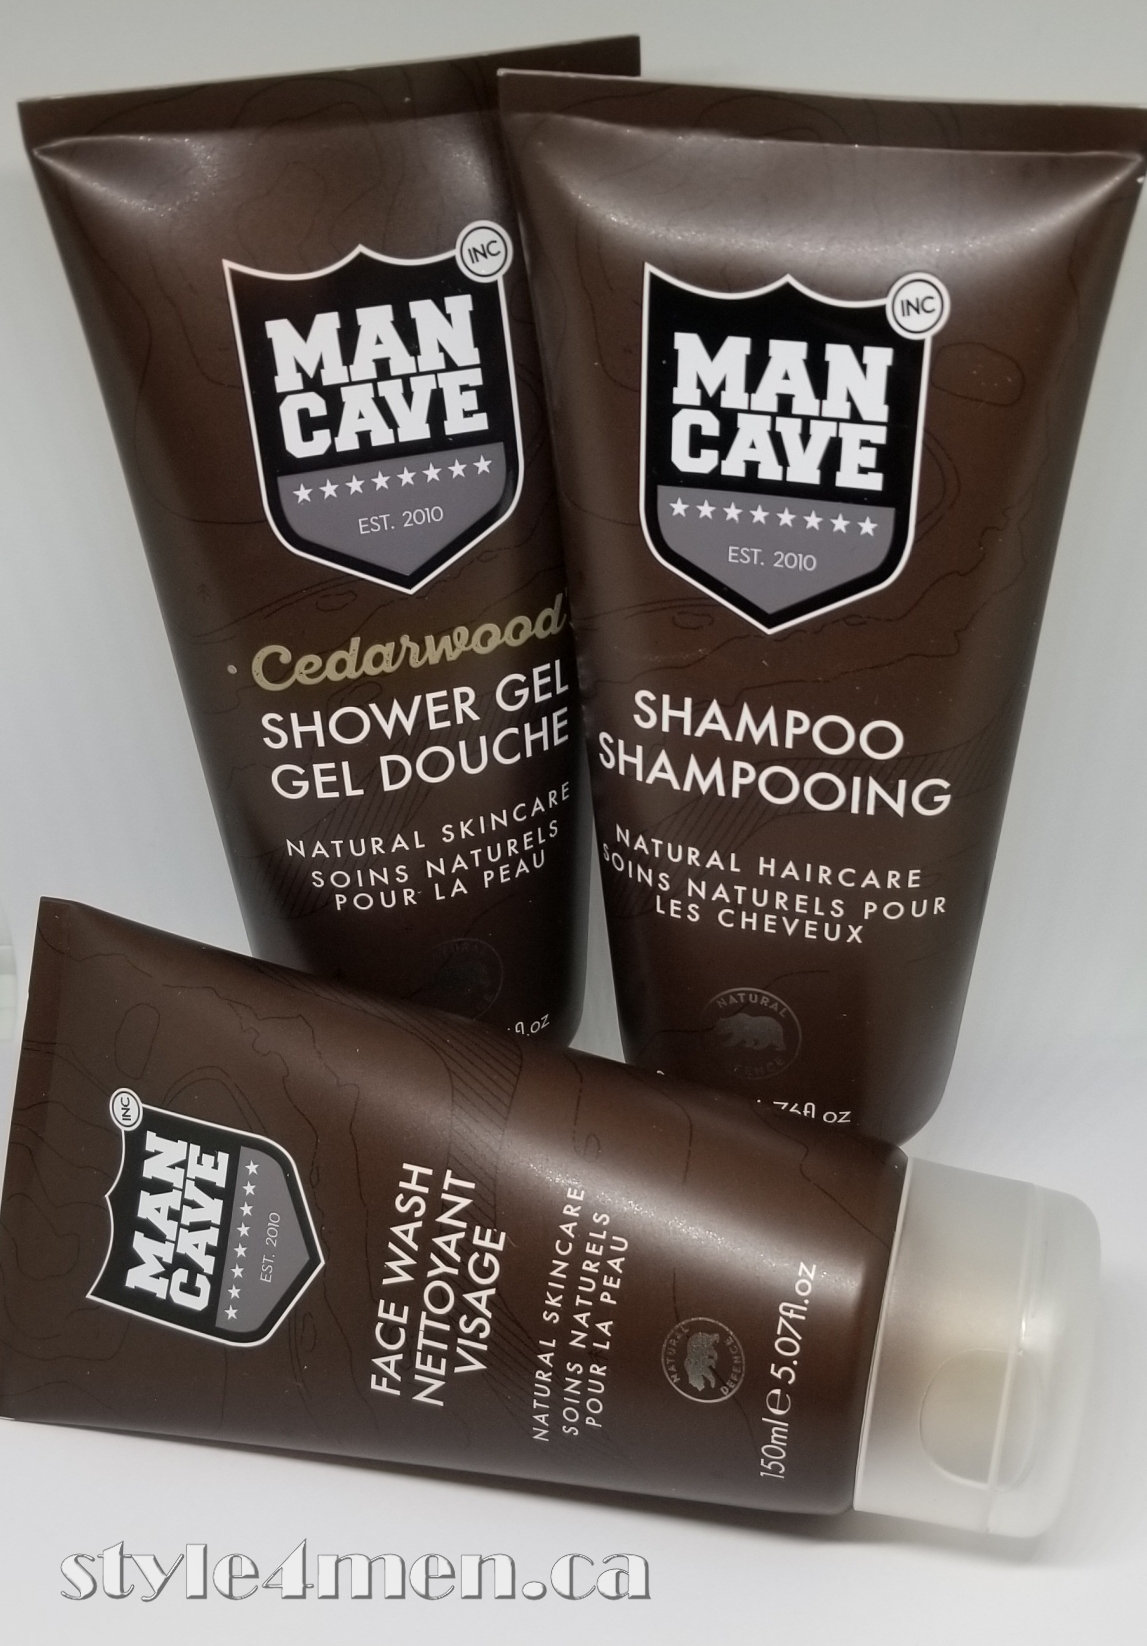 MANCAVE – All Over Body Kit